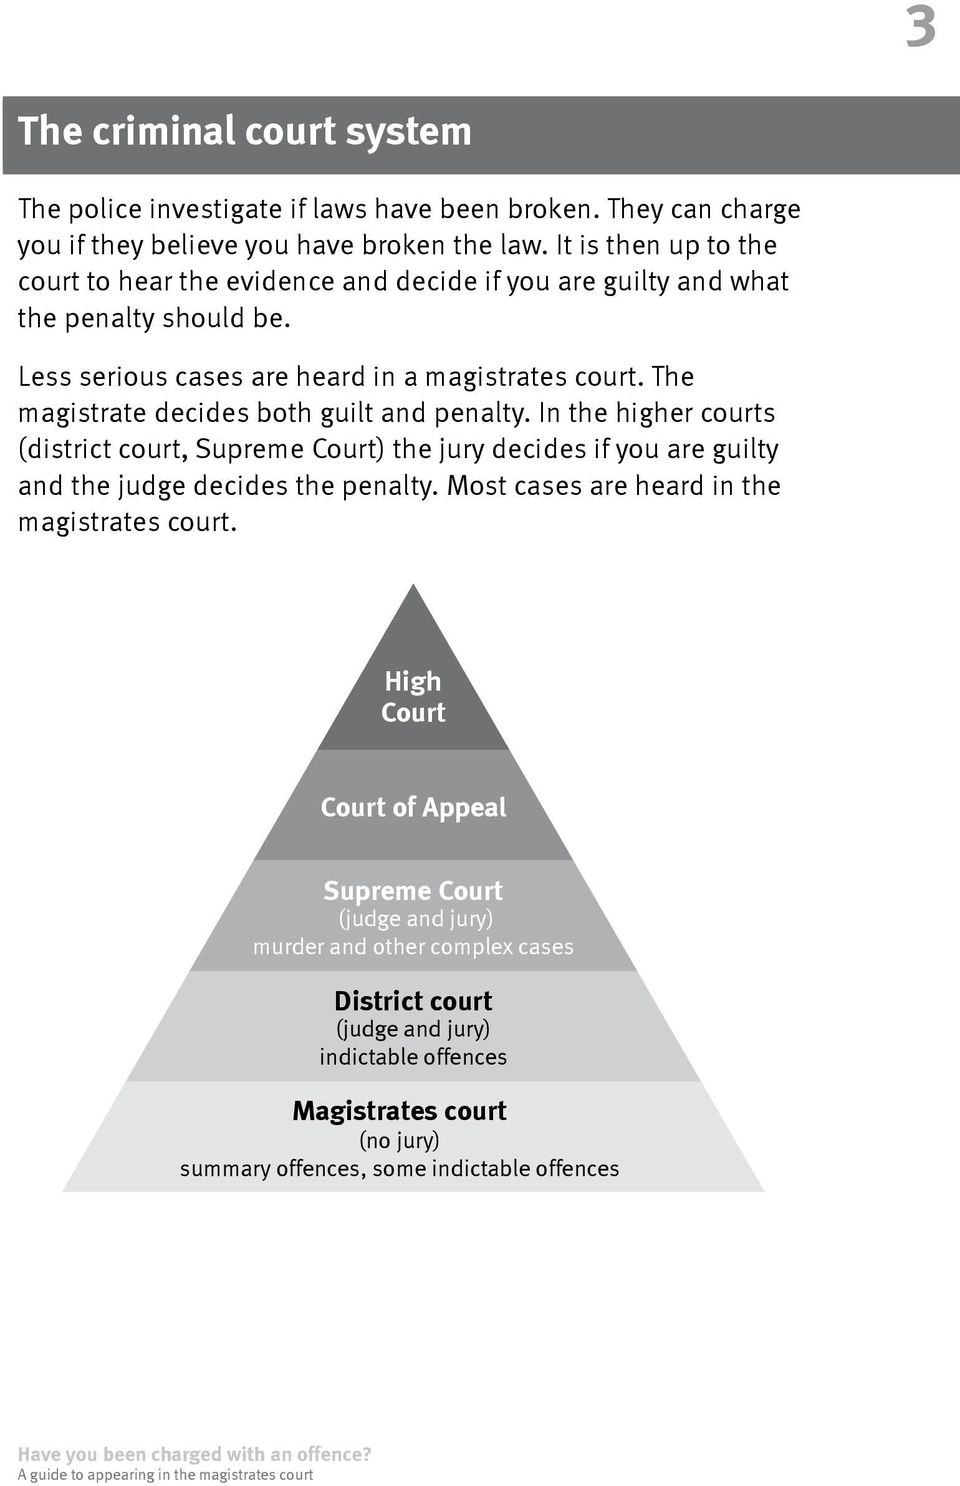 The magistrate decides both guilt and penalty. In the higher courts (district court, Supreme Court) the jury decides if you are guilty and the judge decides the penalty.